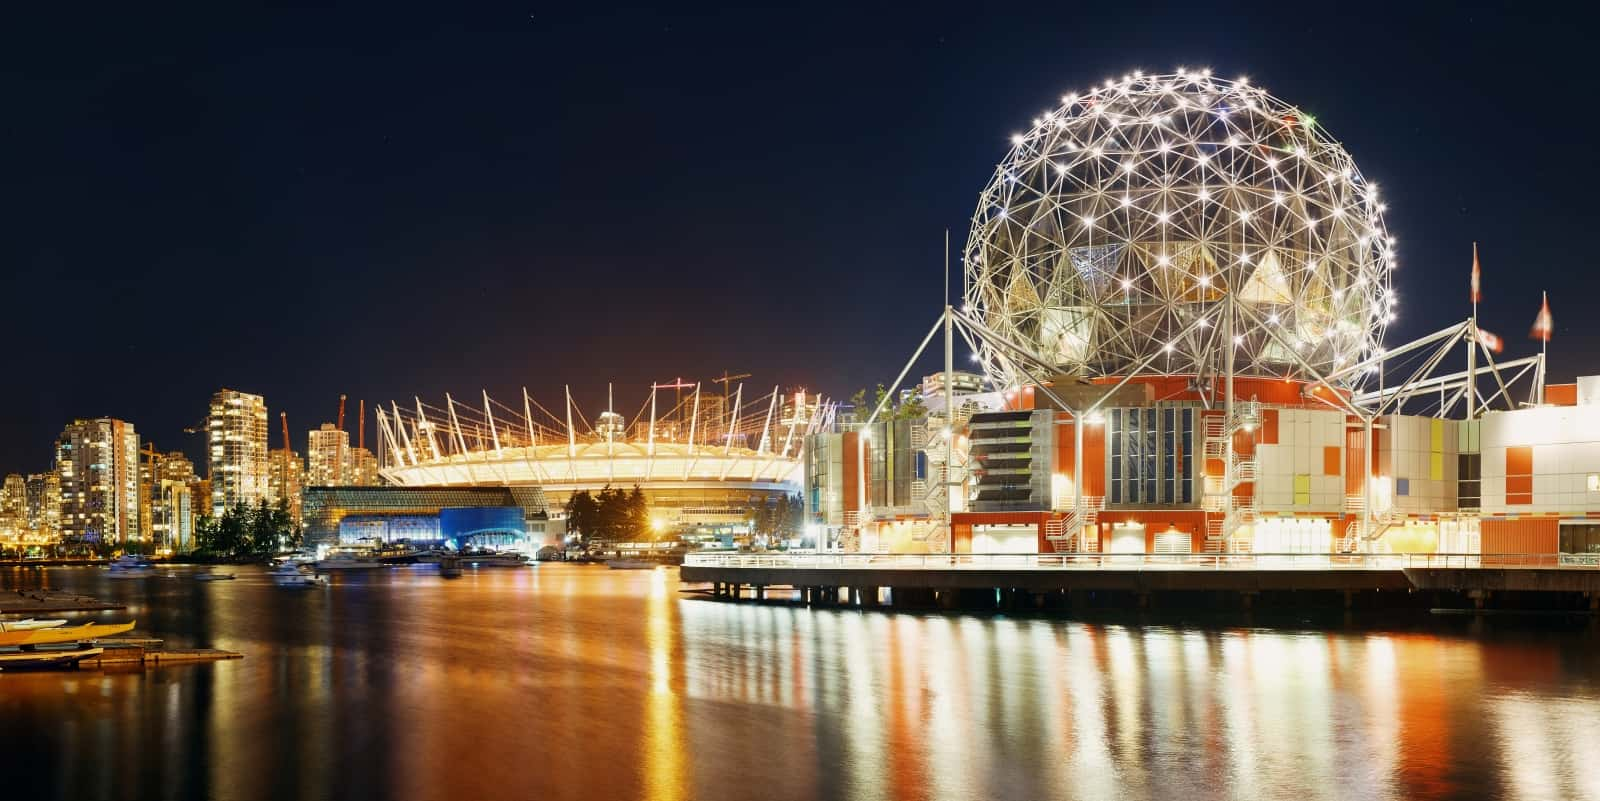 Science World Vancouver Foto Songquan Deng